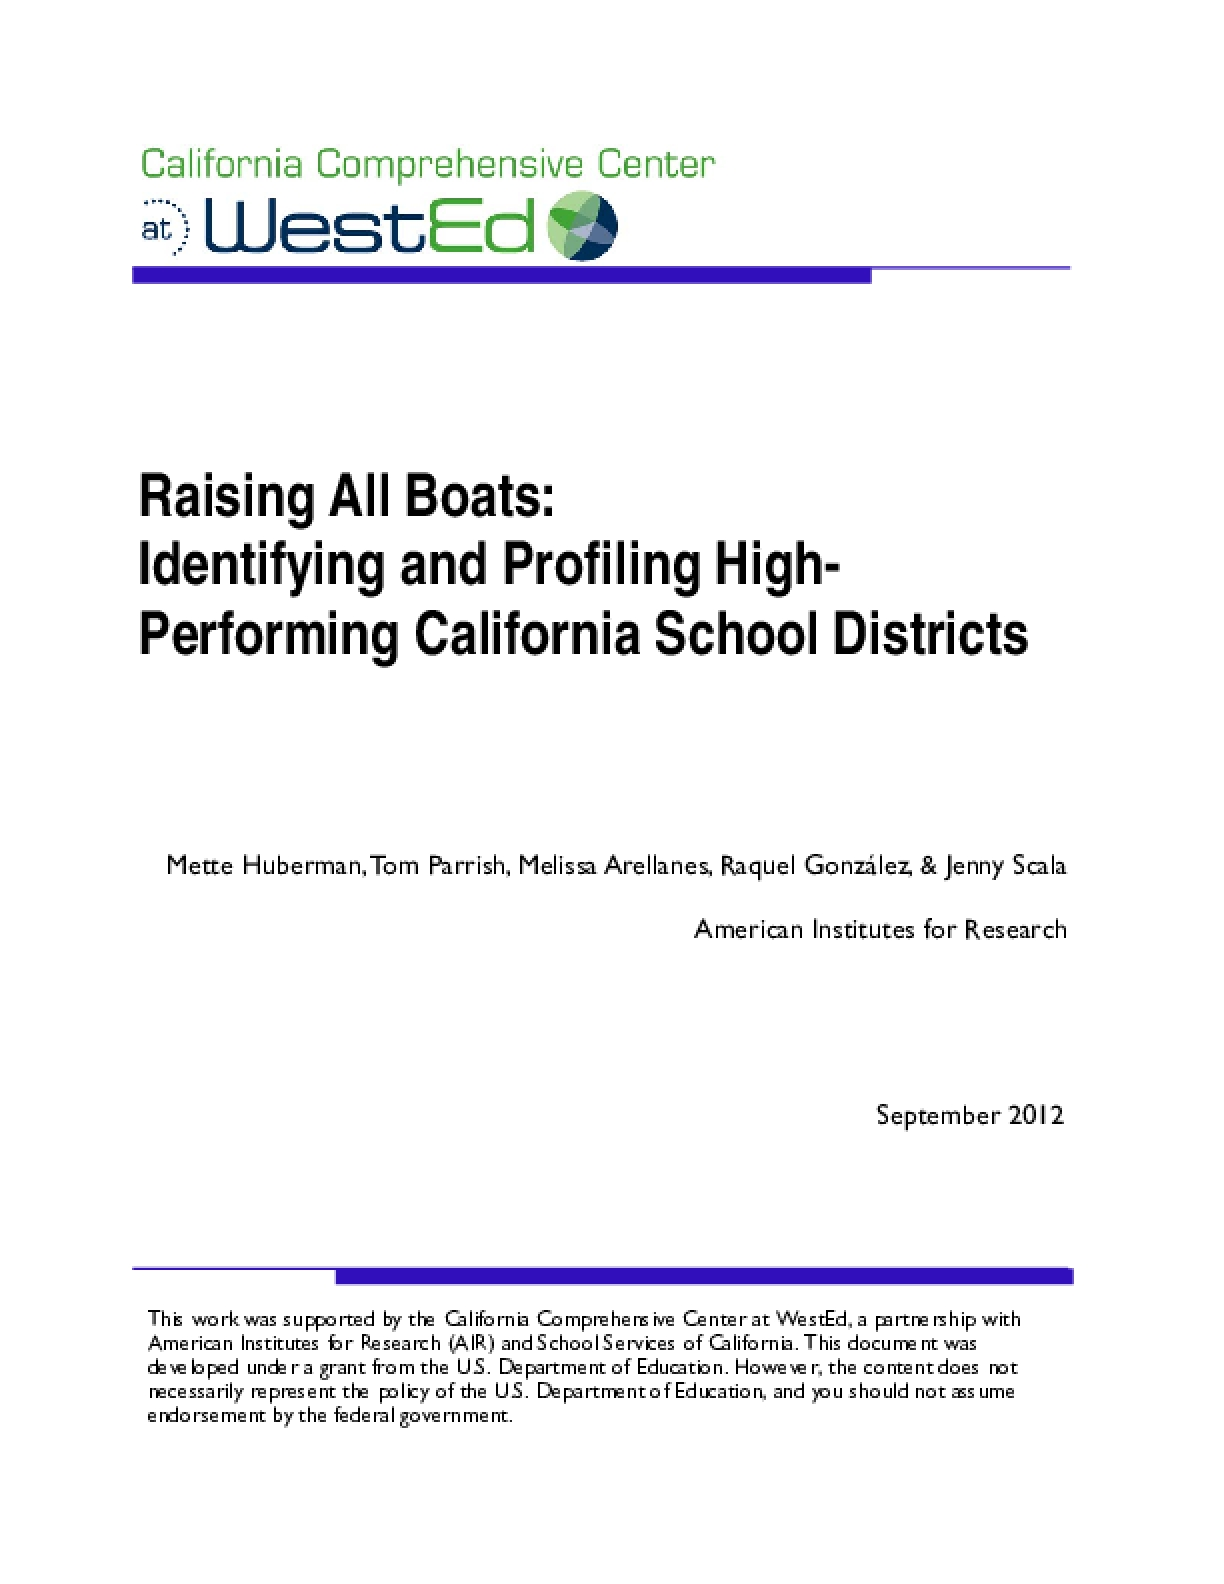 Raising All Boats: Identifying and Profiling High-Performing California School Districts